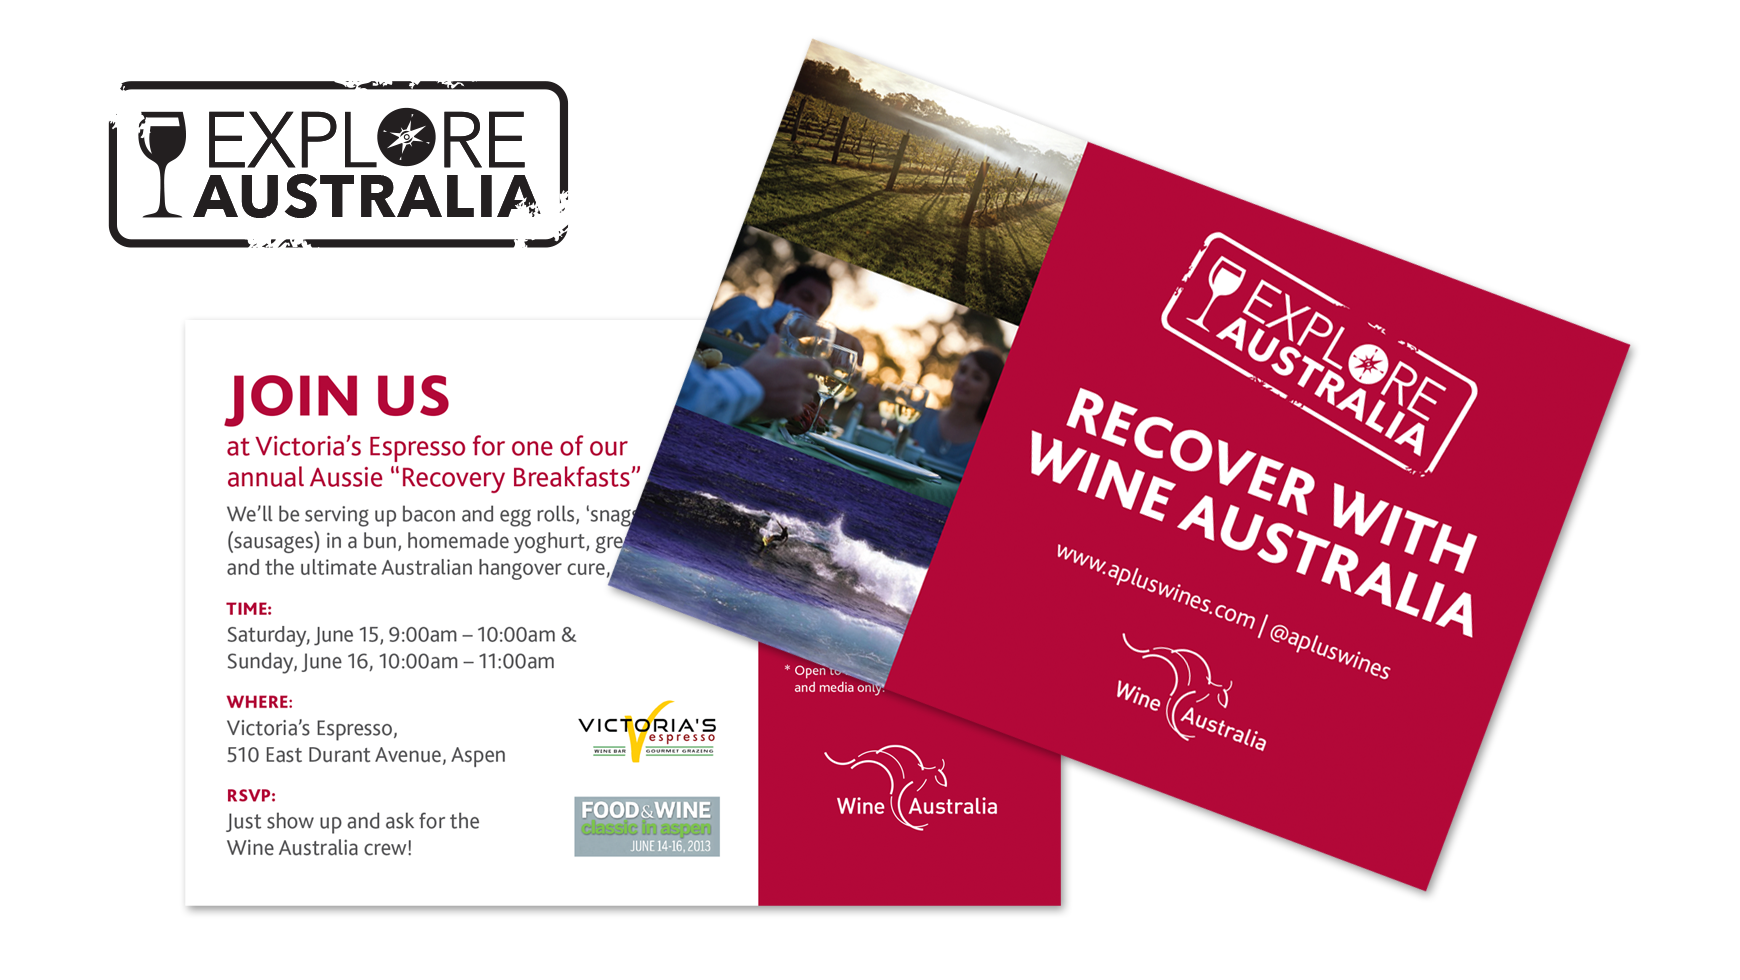 wineaustralia_explore